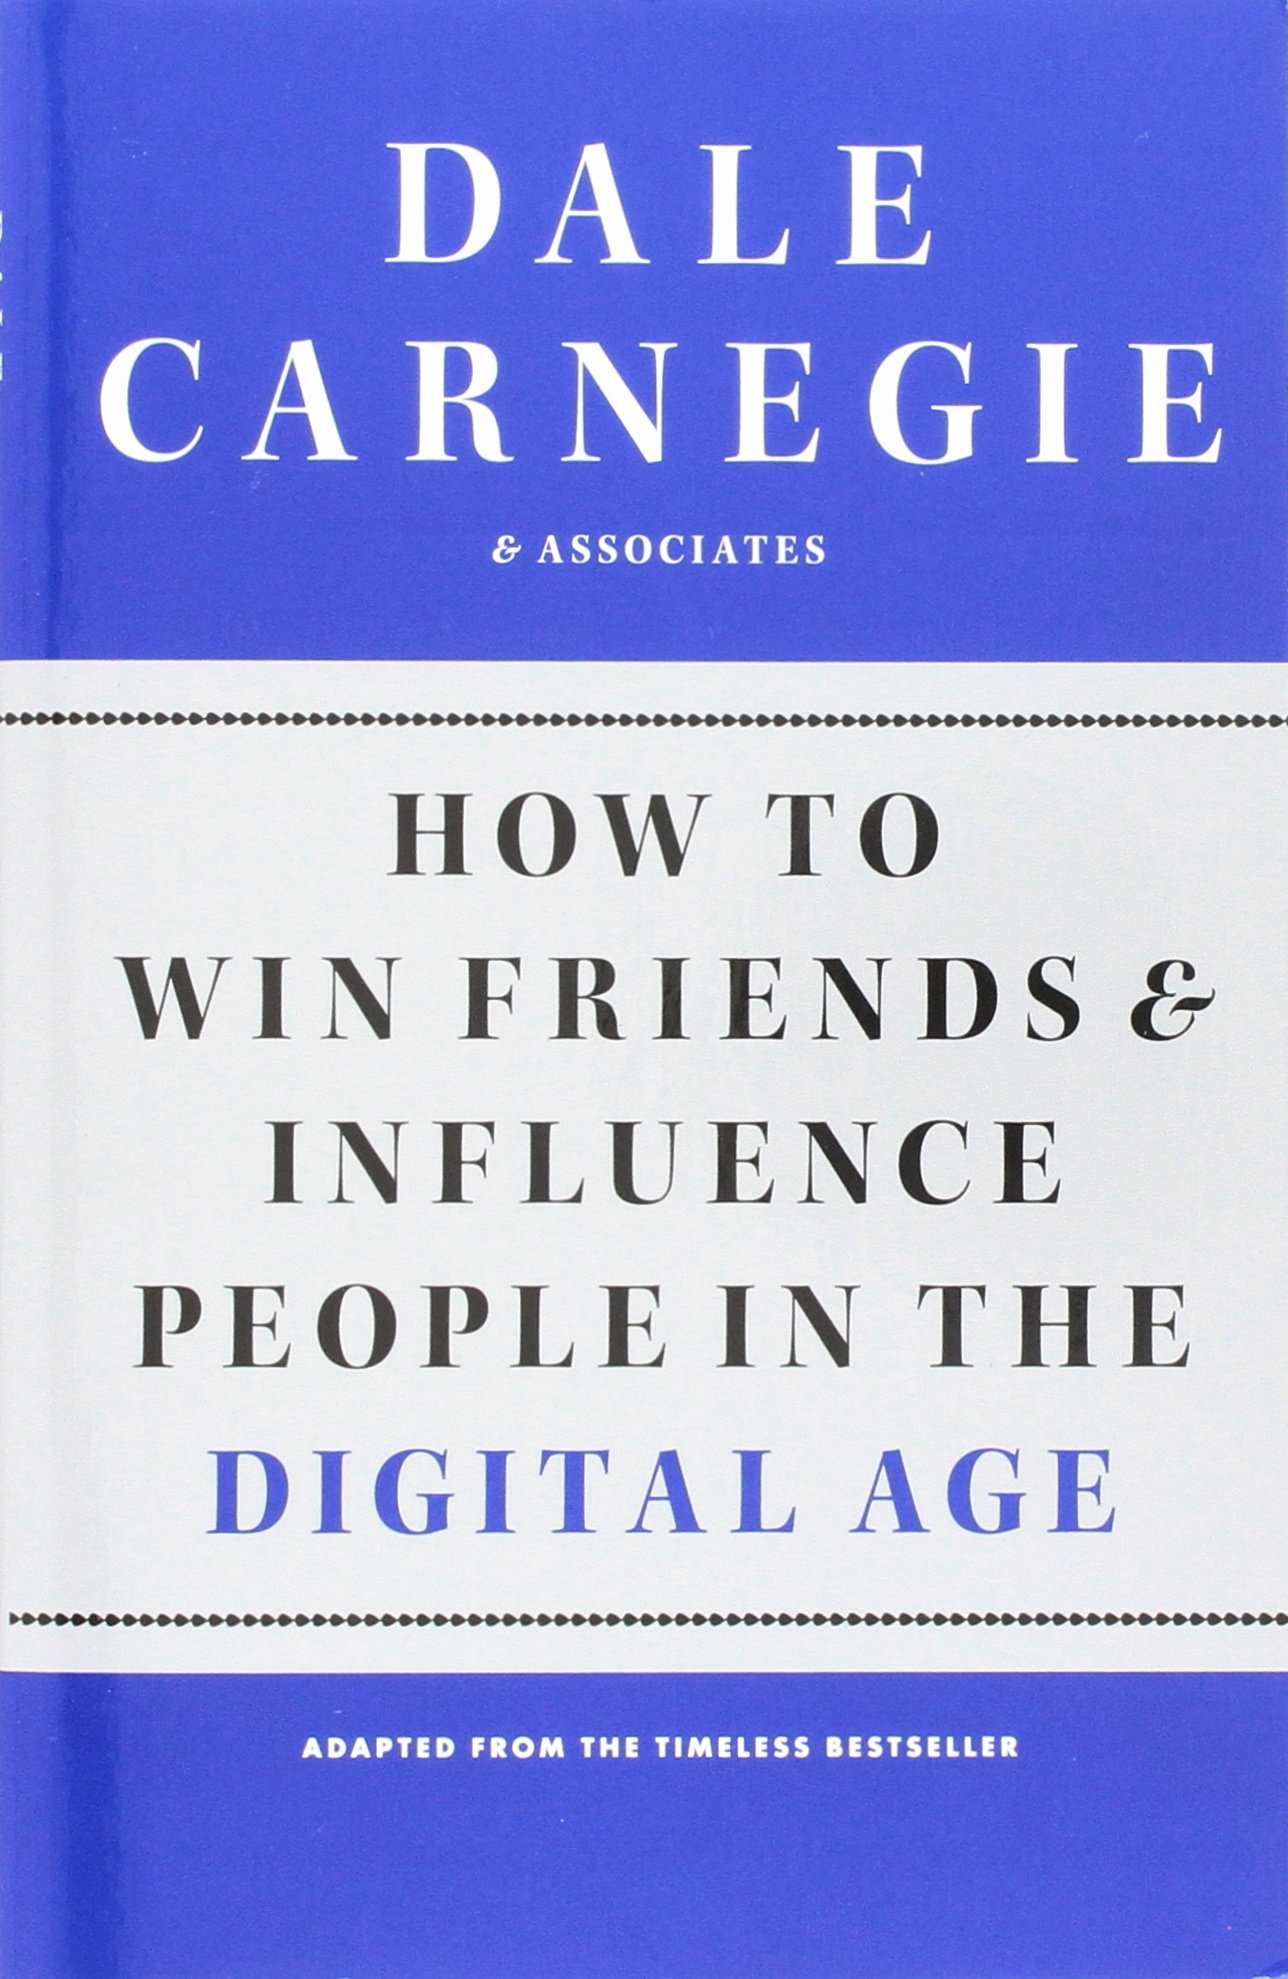 How to influence people 44